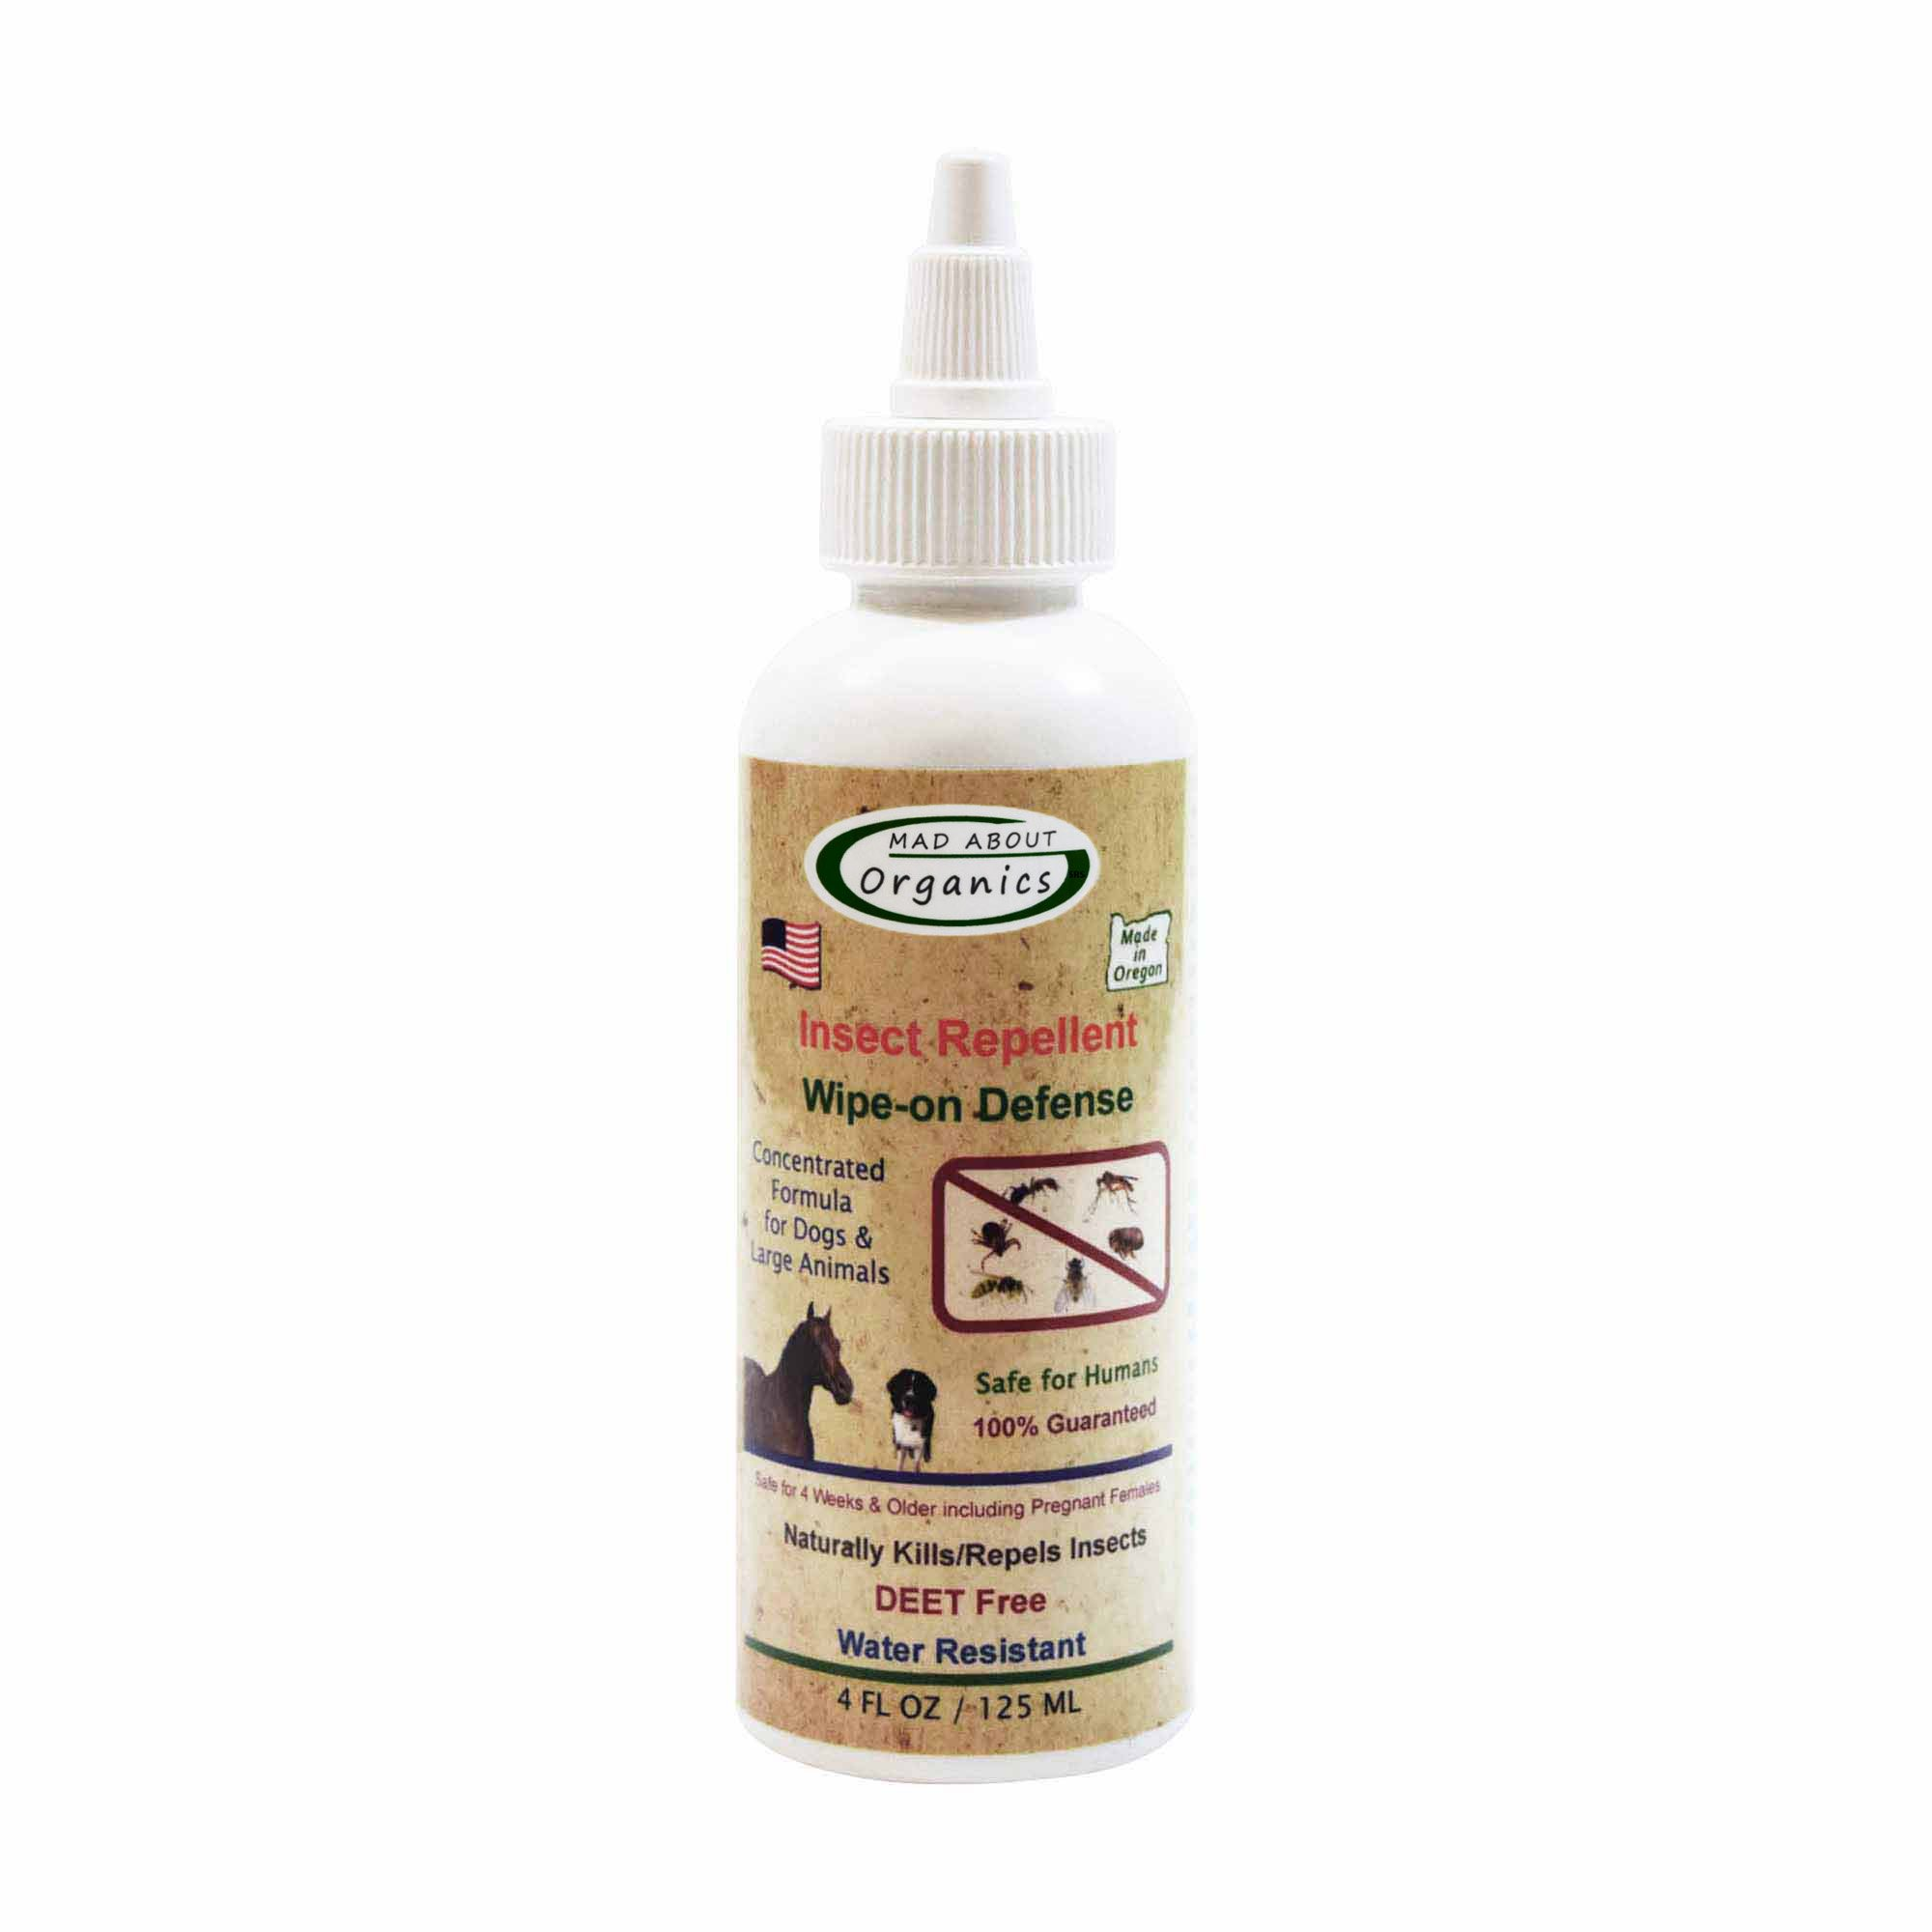 Mad About Organics All Natural Horse/Farm Animal Insect Repellent Wipe-on Defense 4oz by Mad About Organics (Image #1)